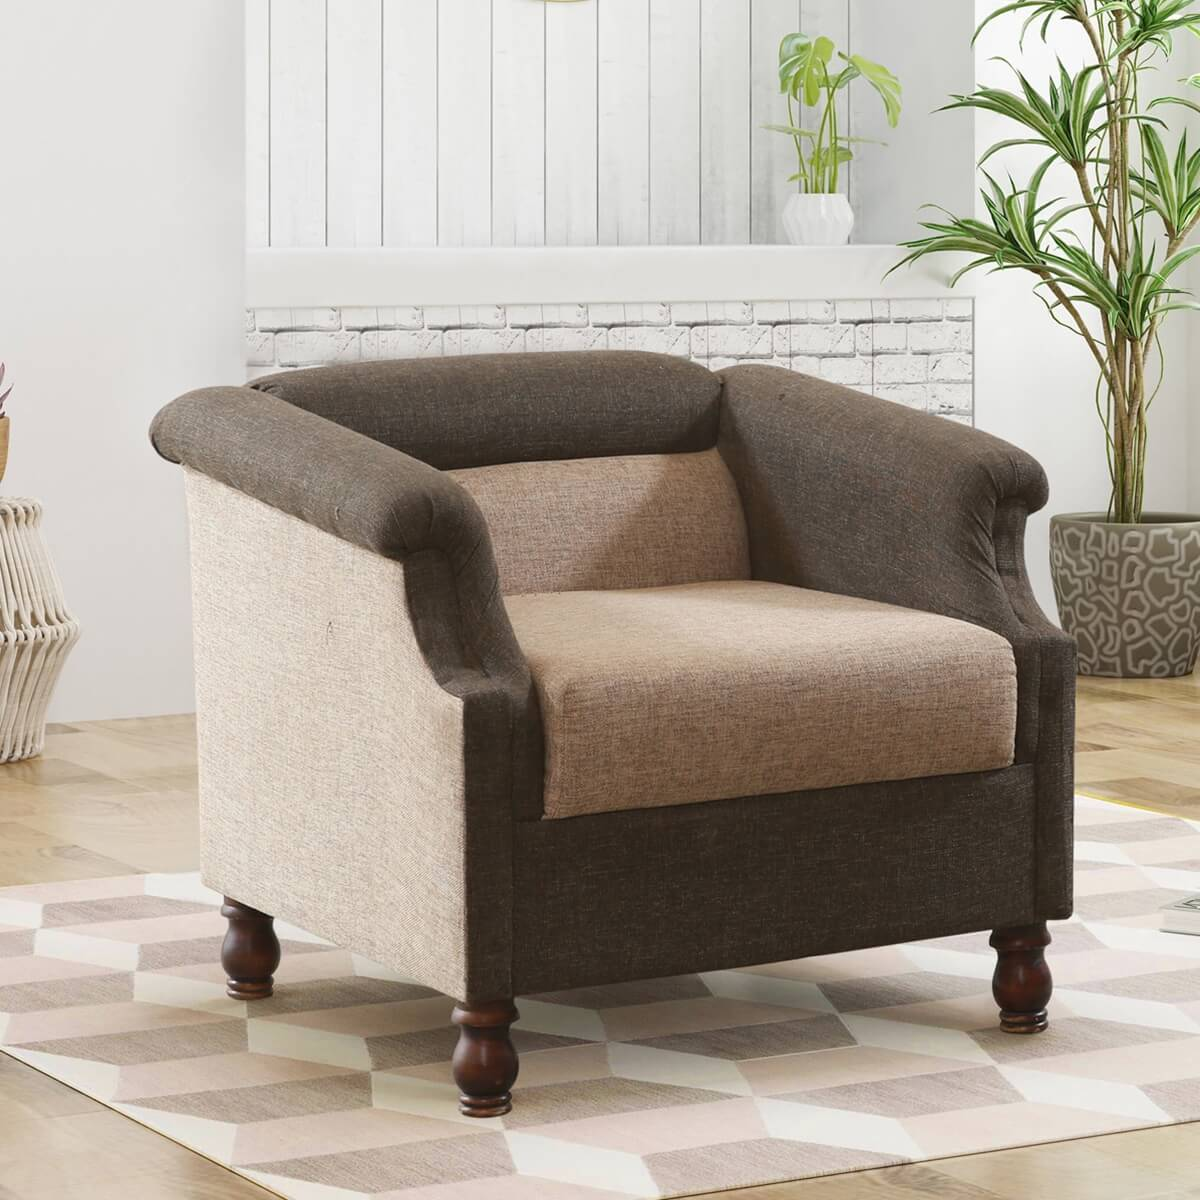 Simcoe Solid Wood Handcrafted Upholstered Sofa Armchair